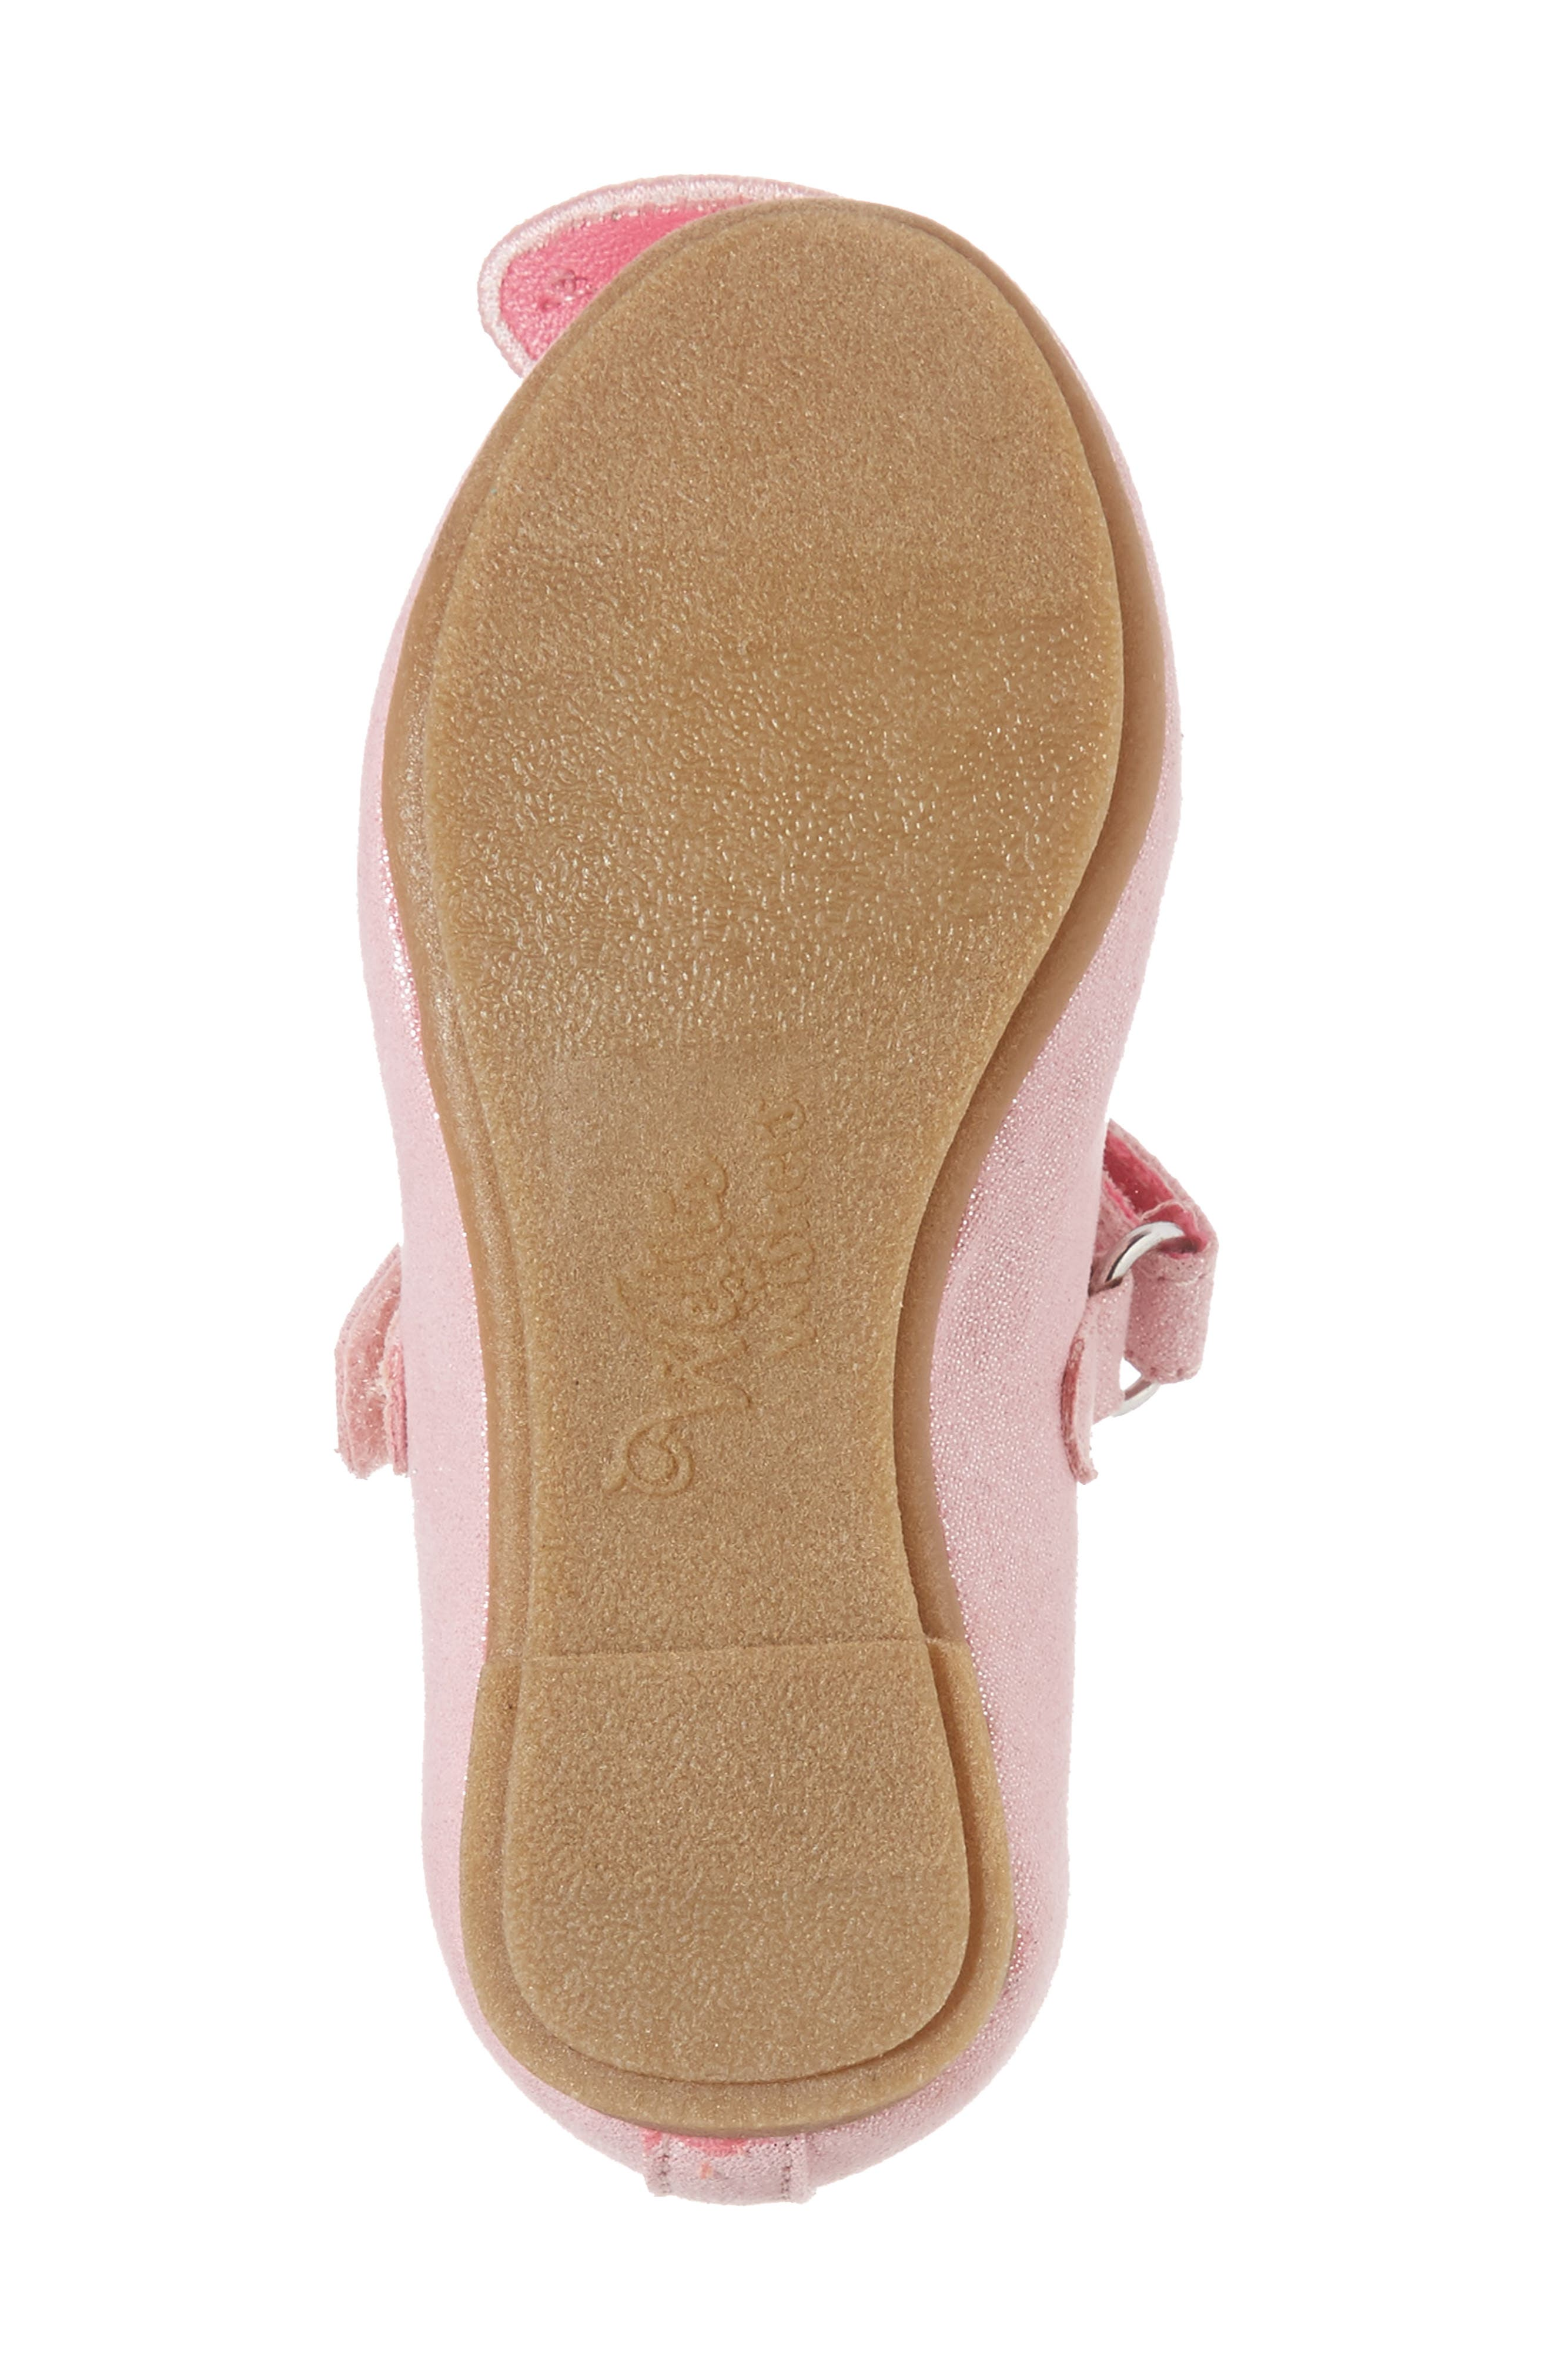 WELLIEWISHERS FROM AMERICAN GIRL,                             Flutter Wings Embellished Ballet Flat,                             Alternate thumbnail 6, color,                             650